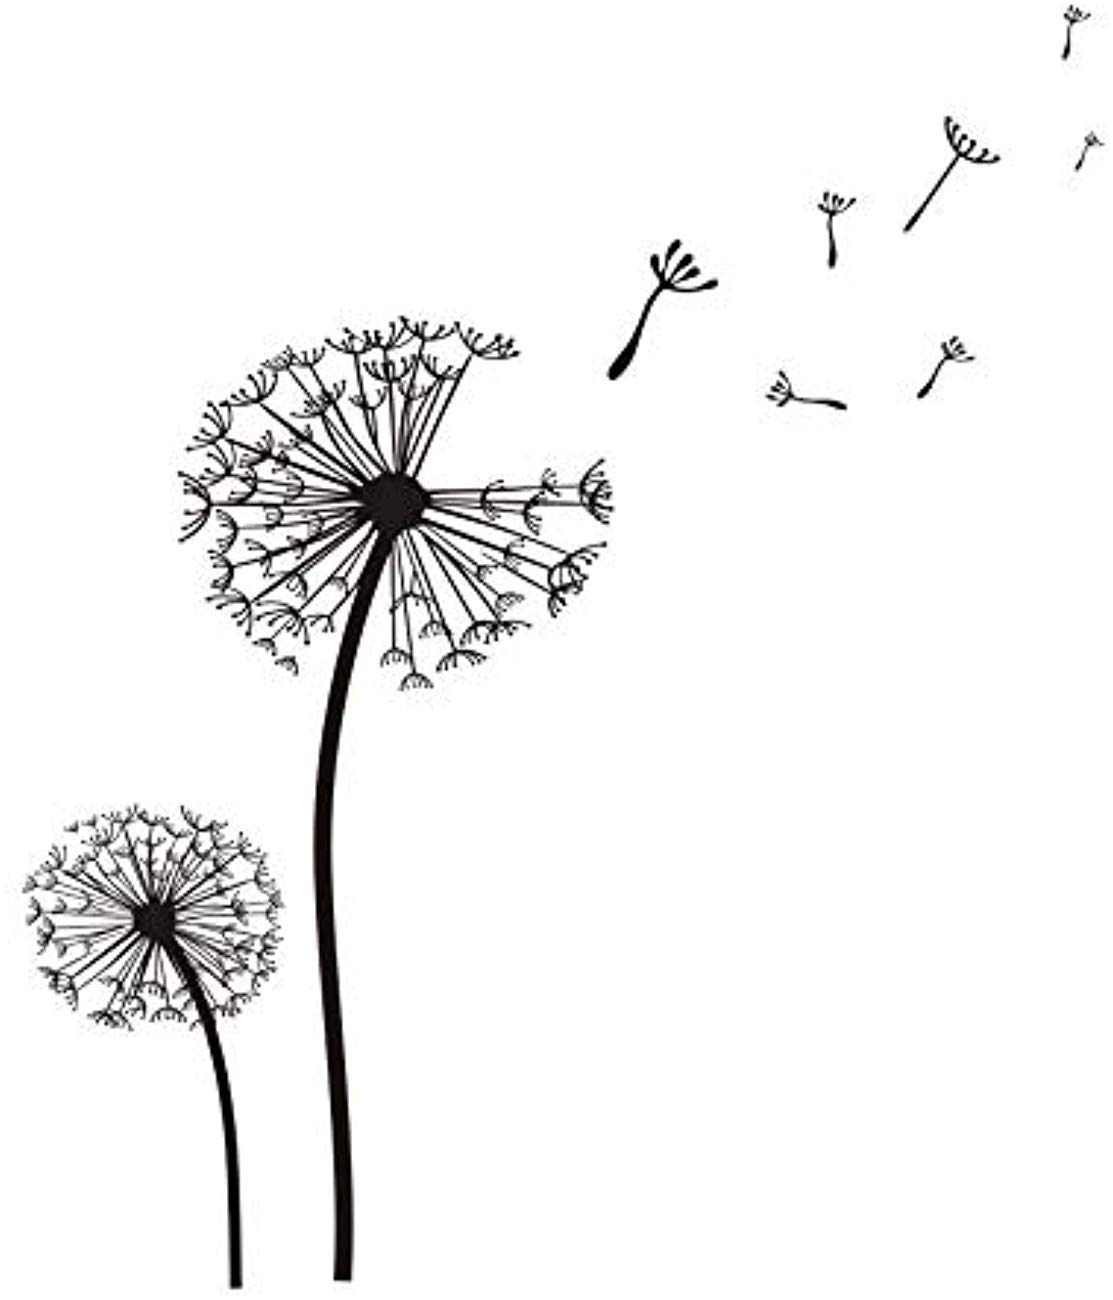 Amazon com fsds wall vinyl decal dandelion art sticker pvc removable mural self adhesive paper kids room home decor cute dandelion stickers home kitchen